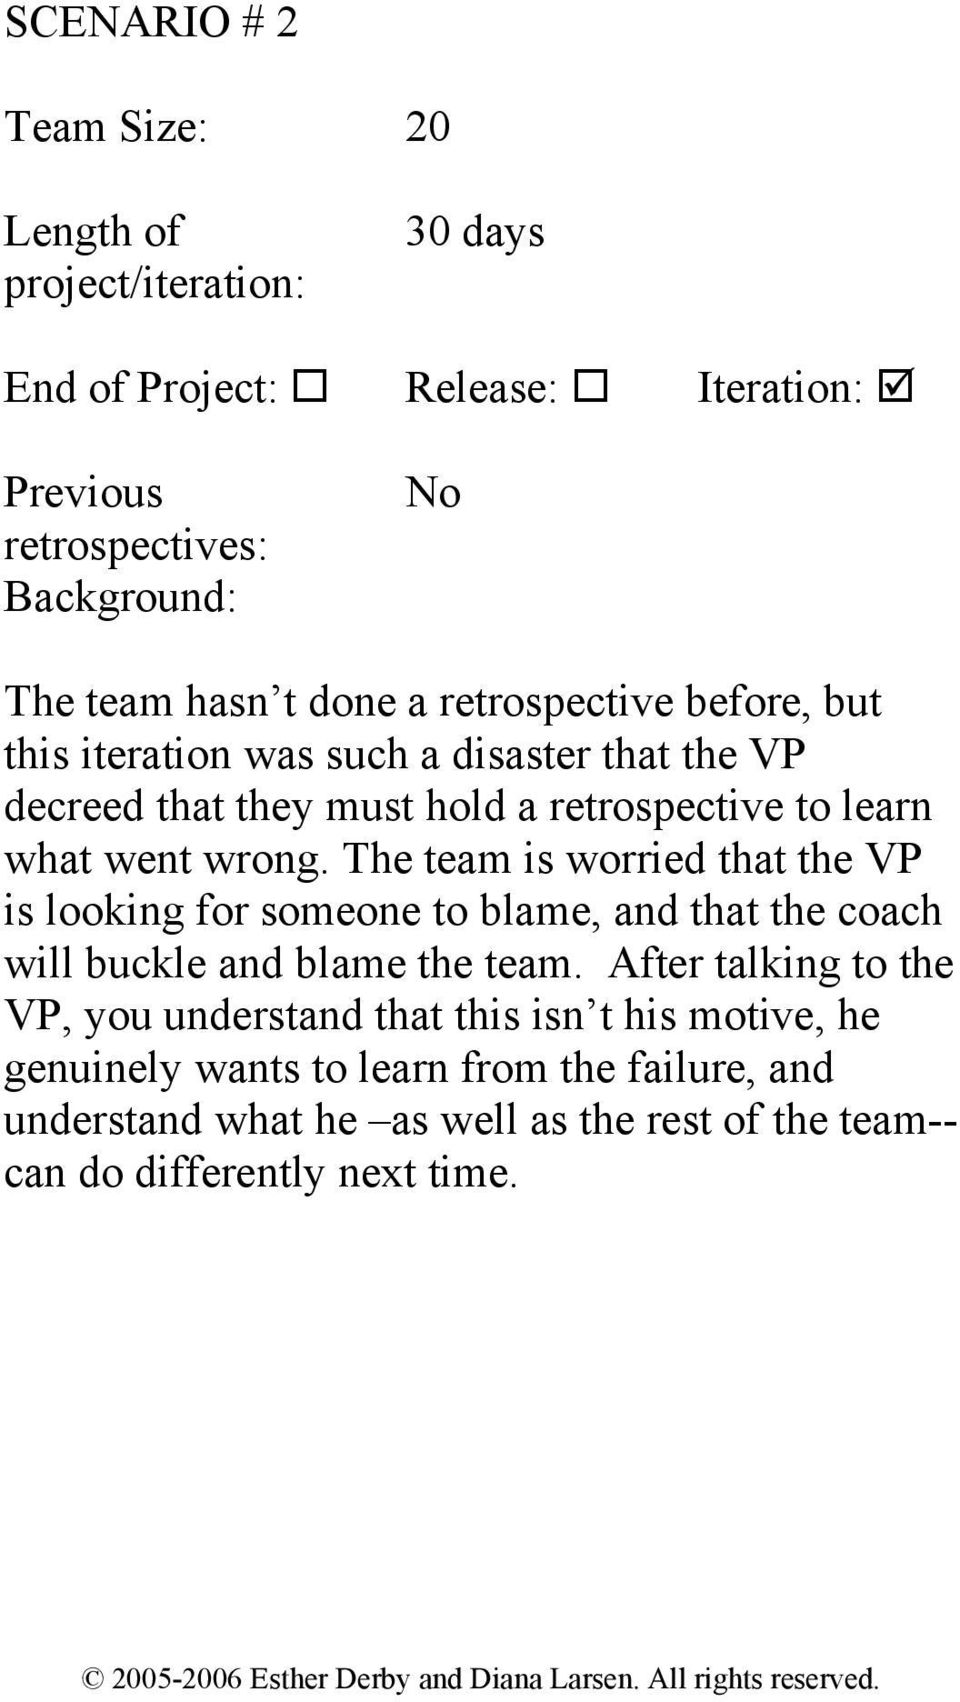 The team is worried that the VP is looking for someone to blame, and that the coach will buckle and blame the team.